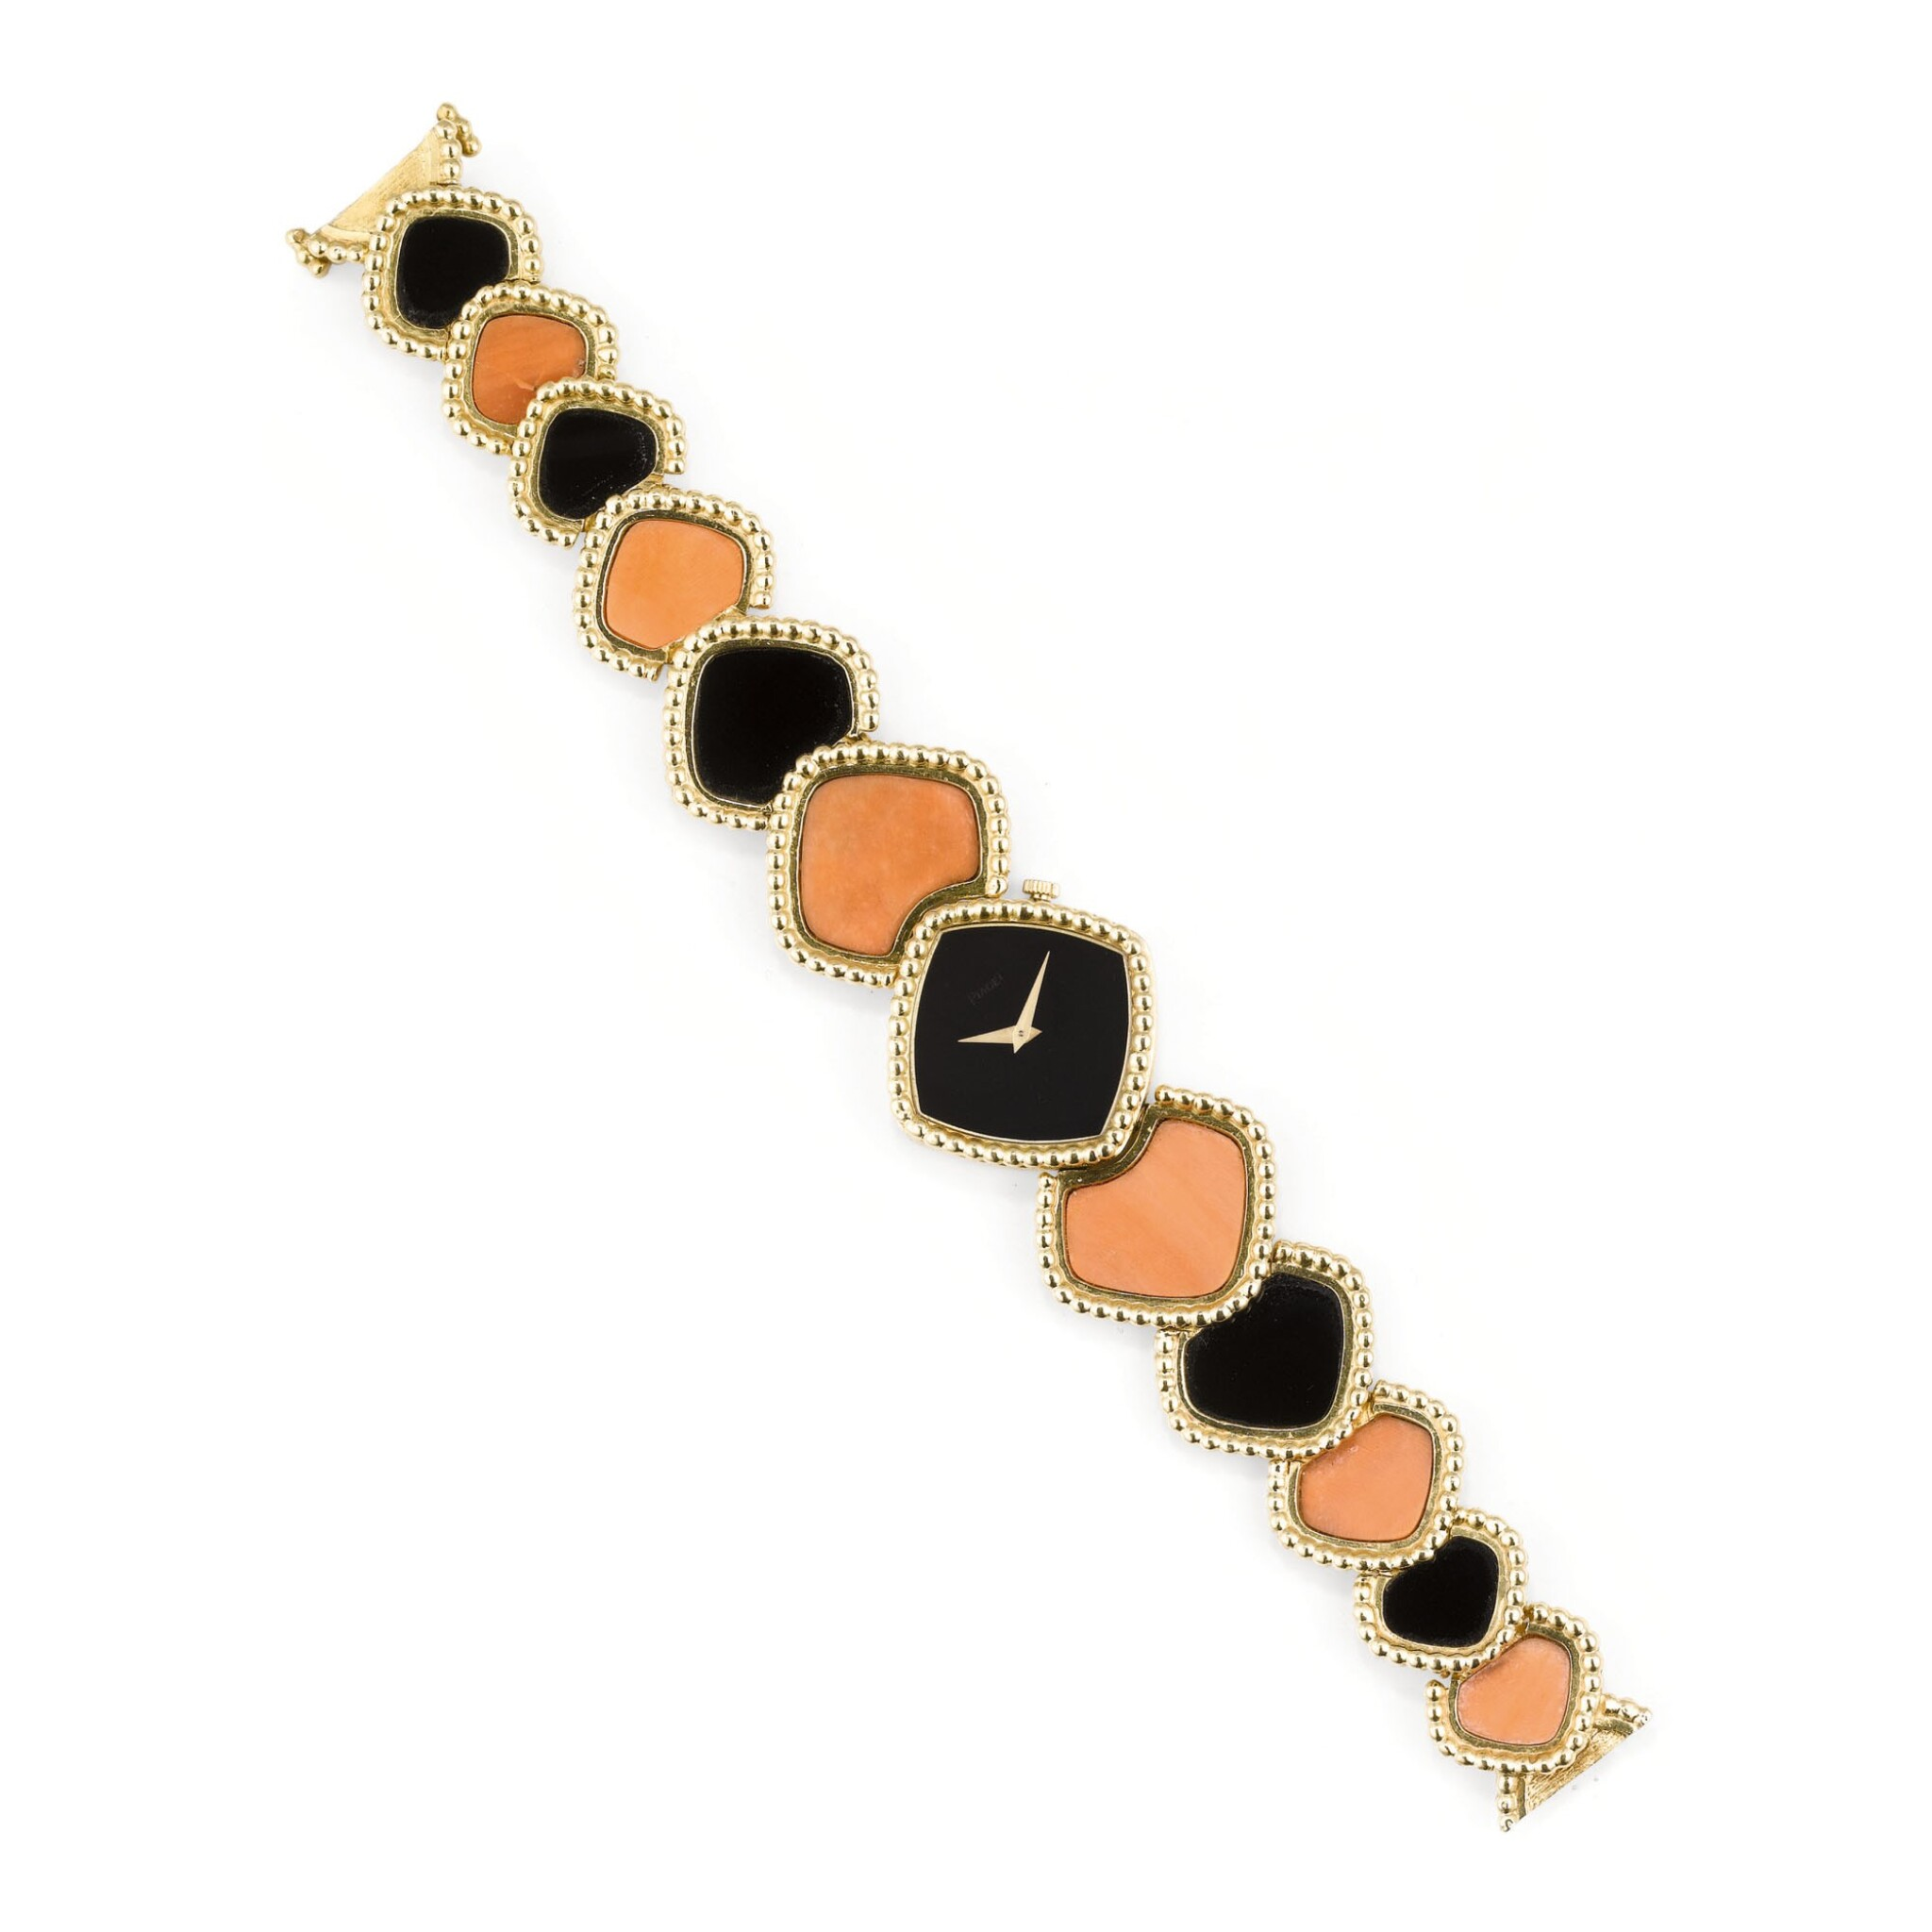 View full screen - View 1 of Lot 130. MONTRE-BRACELET DE DAME ONYX ET CORAIL, PIAGET, VERS 1970   LADY'S ONYX AND CORAL WRISTWATCH, PIAGET, 1970S.